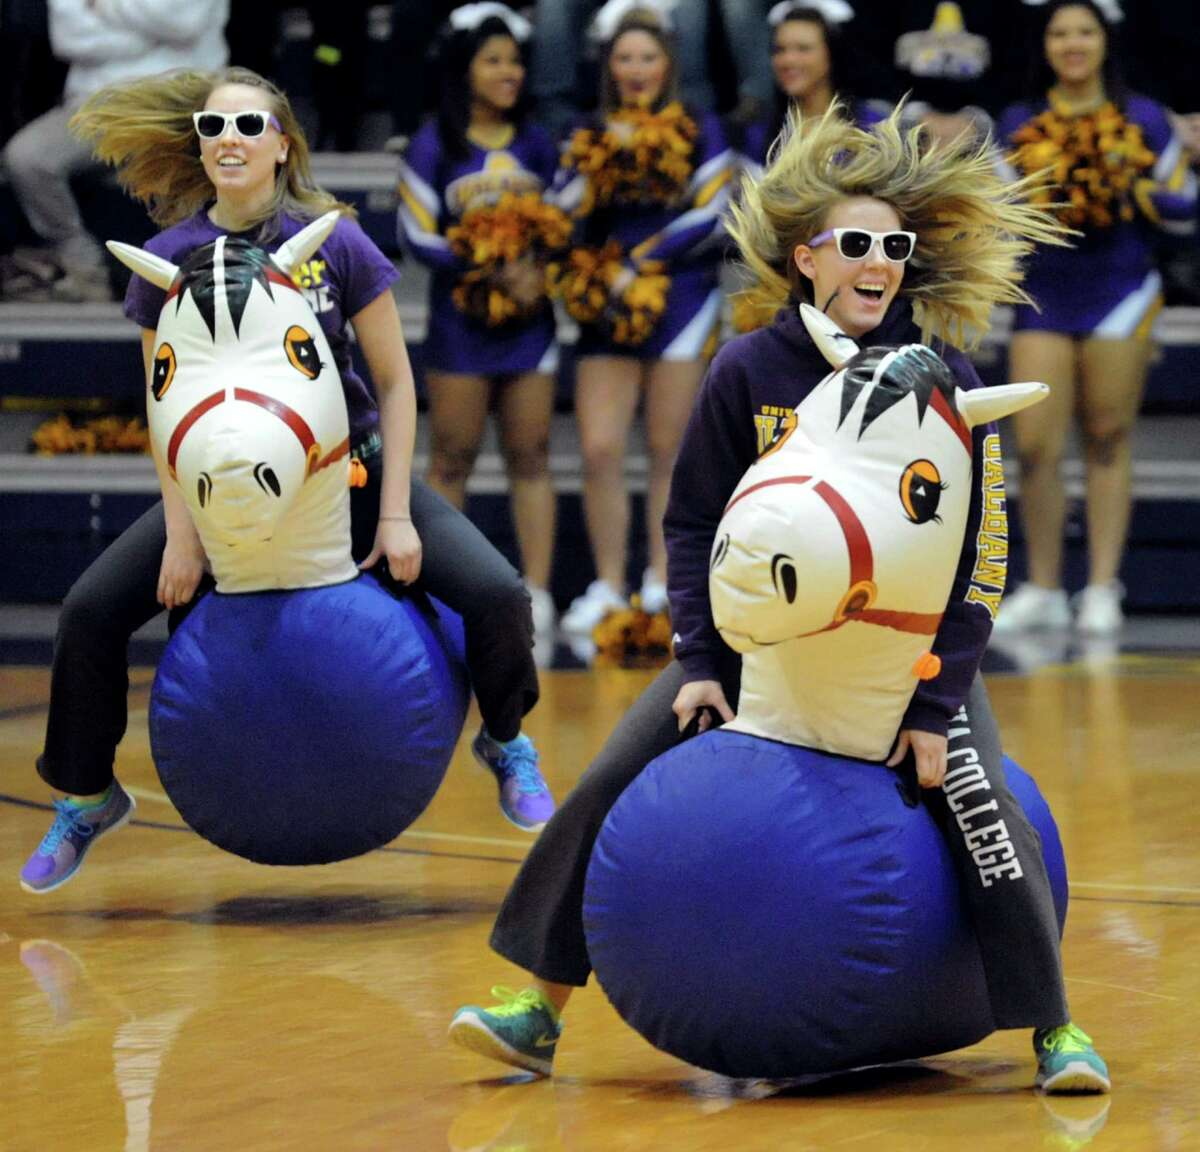 UAlbany students race on bouncy horses during a break in their basketball game against New Hampshire on Thursday, Feb. 27, 2014, UAlbany in Albany, N.Y. (Cindy Schultz / Times Union)